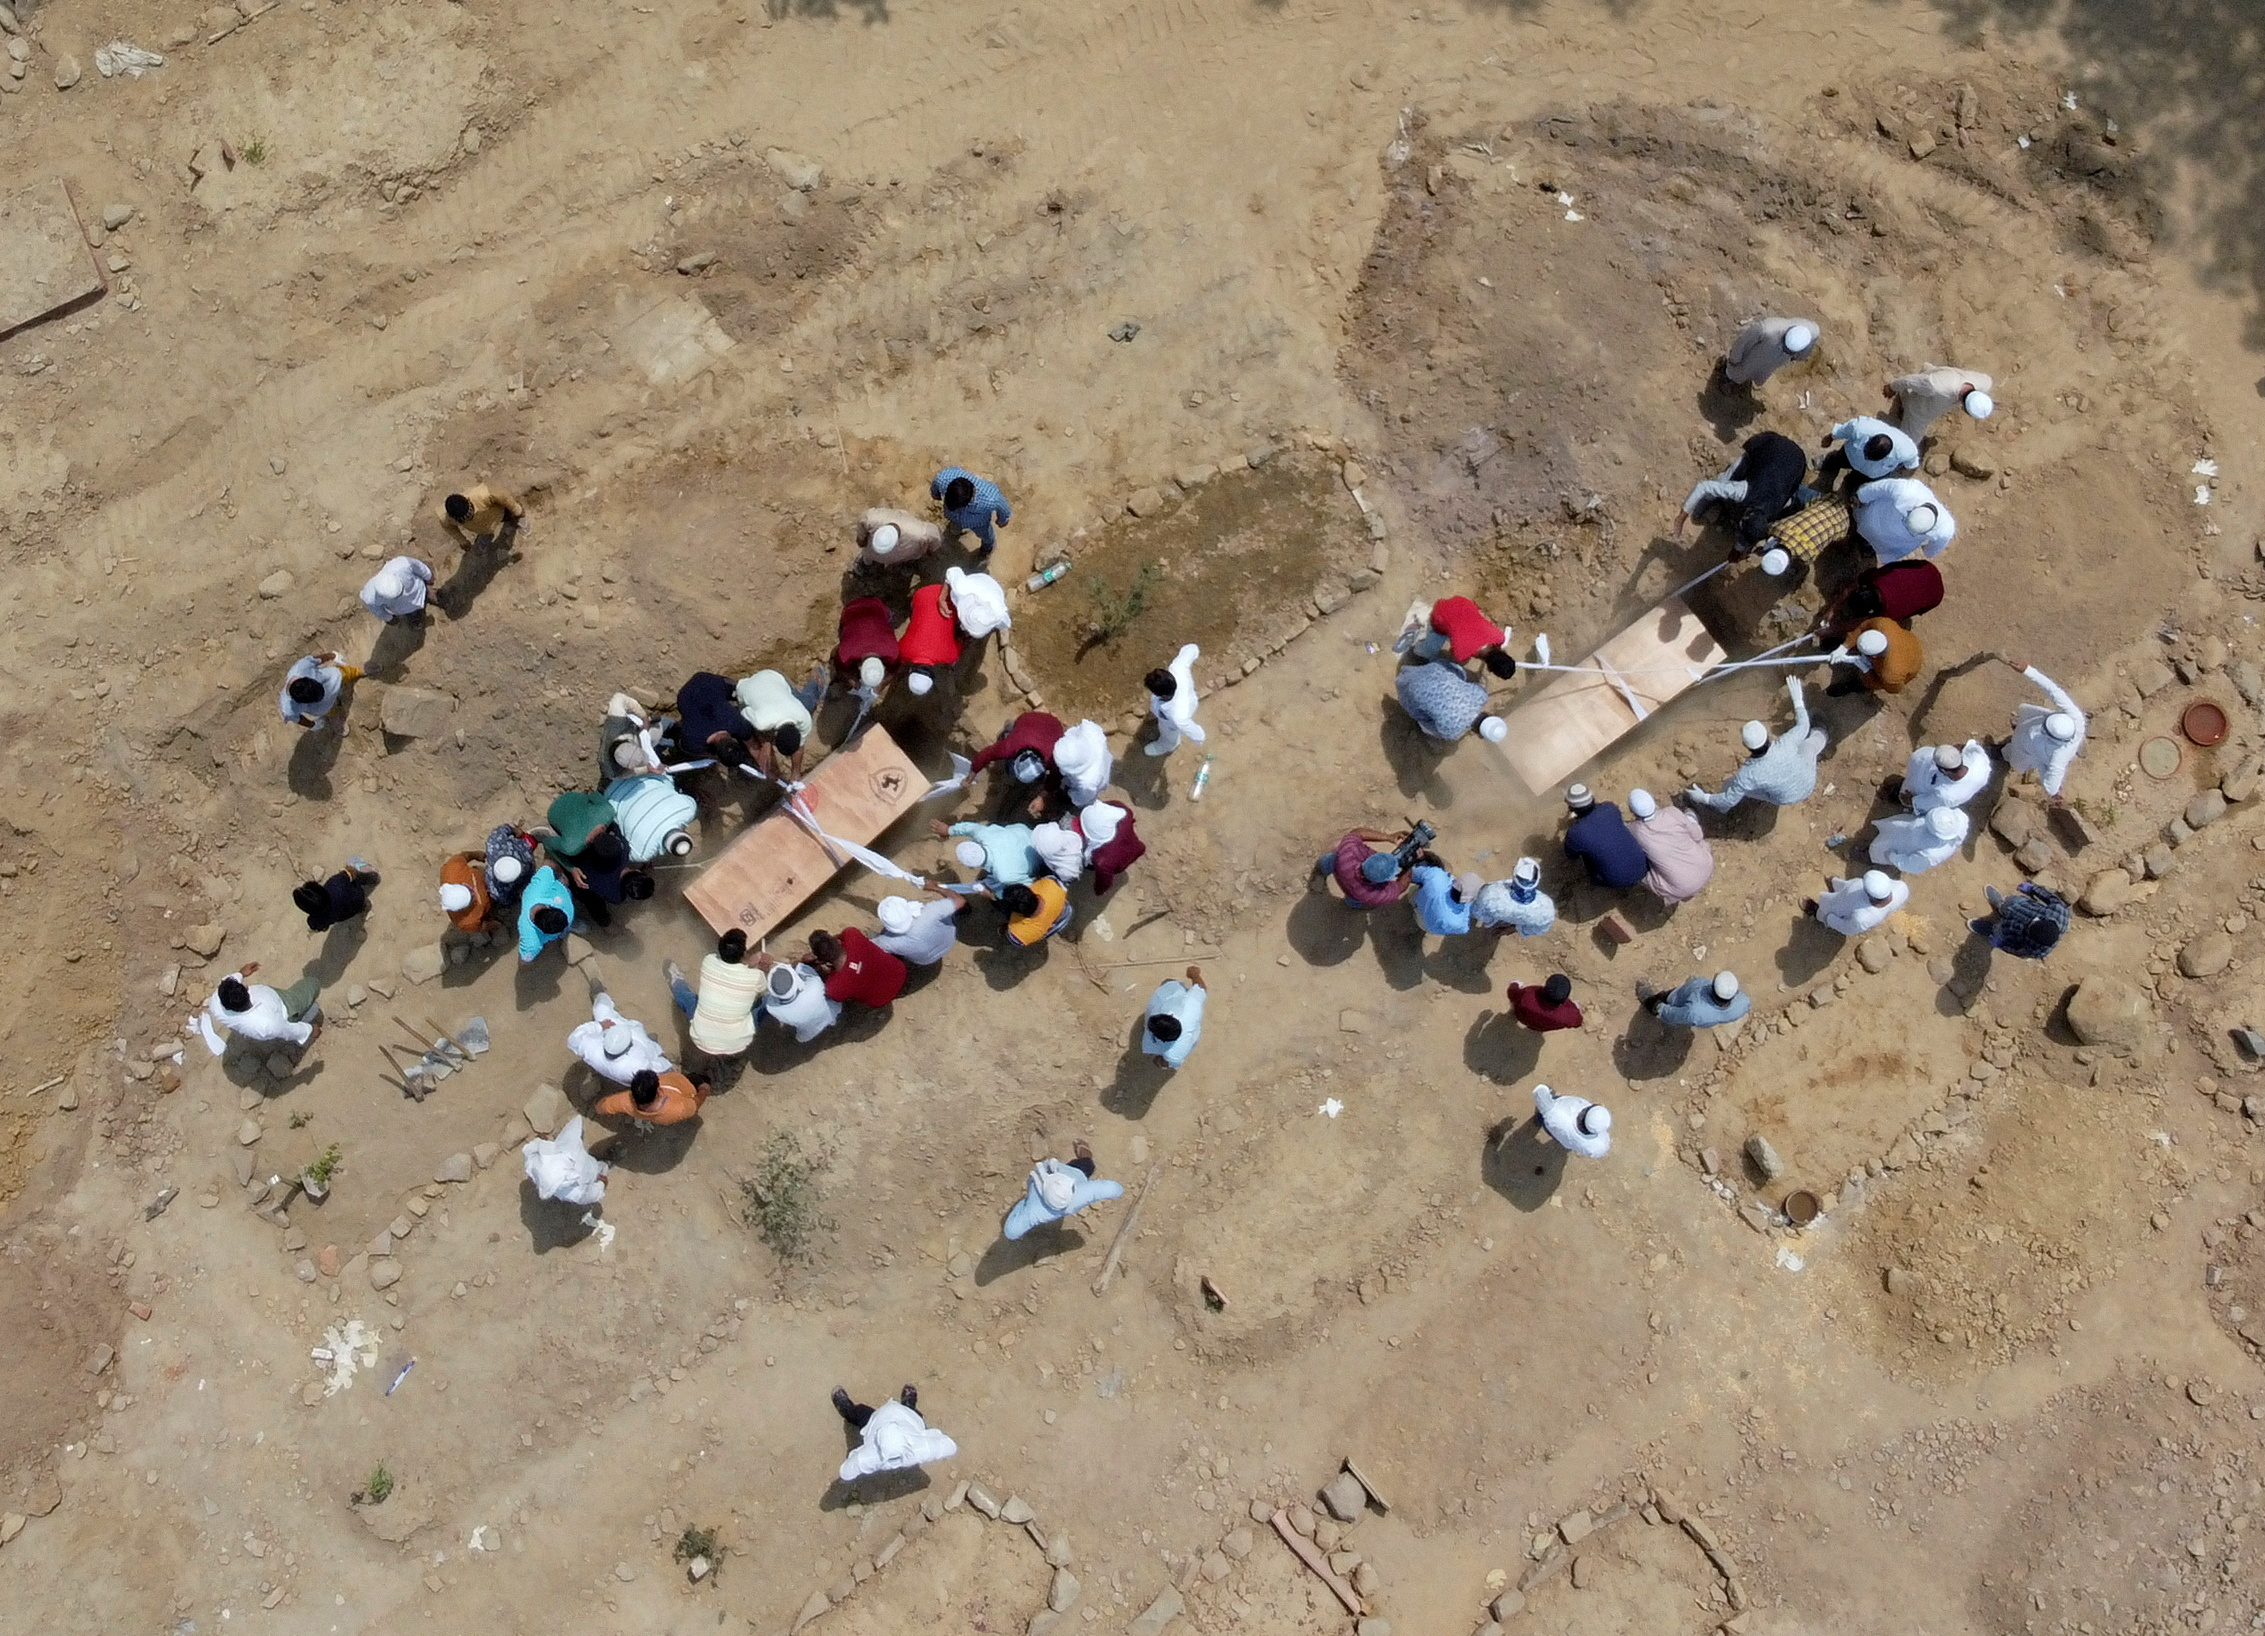 People bury the bodies of victims who died due to the coronavirus disease (COVID-19), at a graveyard in New Delhi, India, April 16, 2021. Picture taken with a drone. REUTERS/Danish Siddiqui